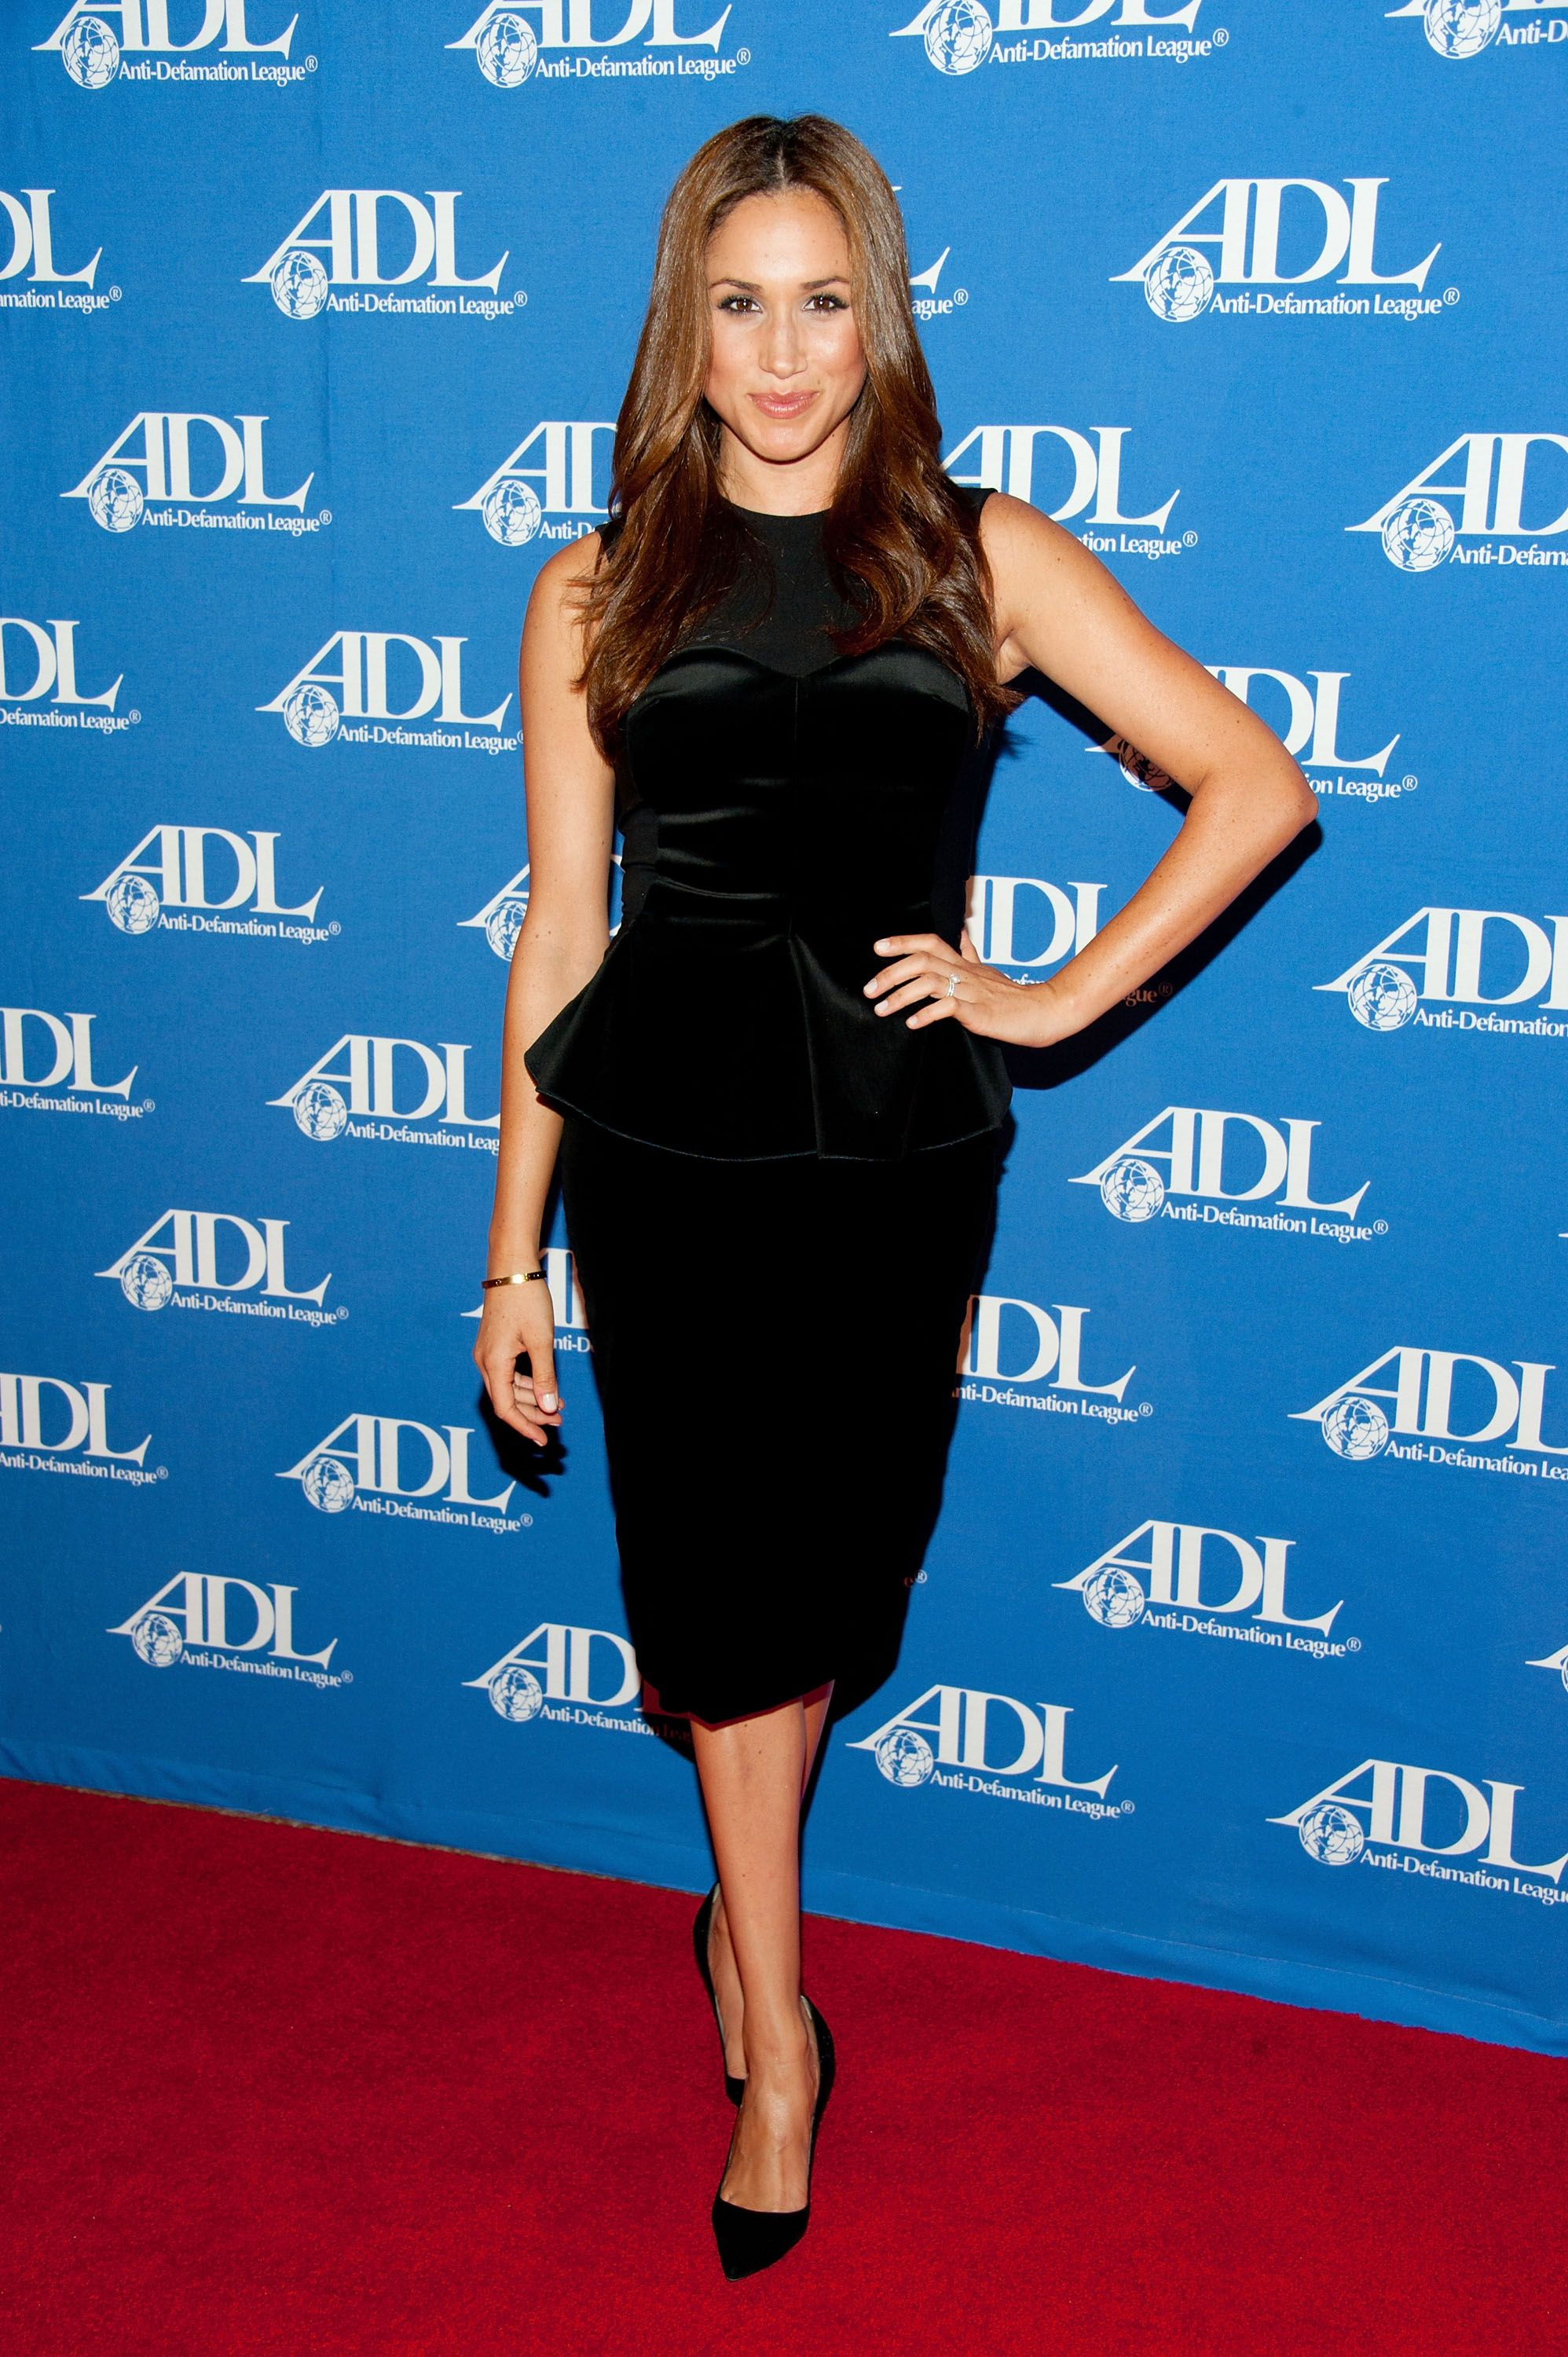 Meghan Markle at the Anti-Defamation League Entertainment Industry Awards Dinner on October 11, 2011, in Beverly Hills, California | Getty Images